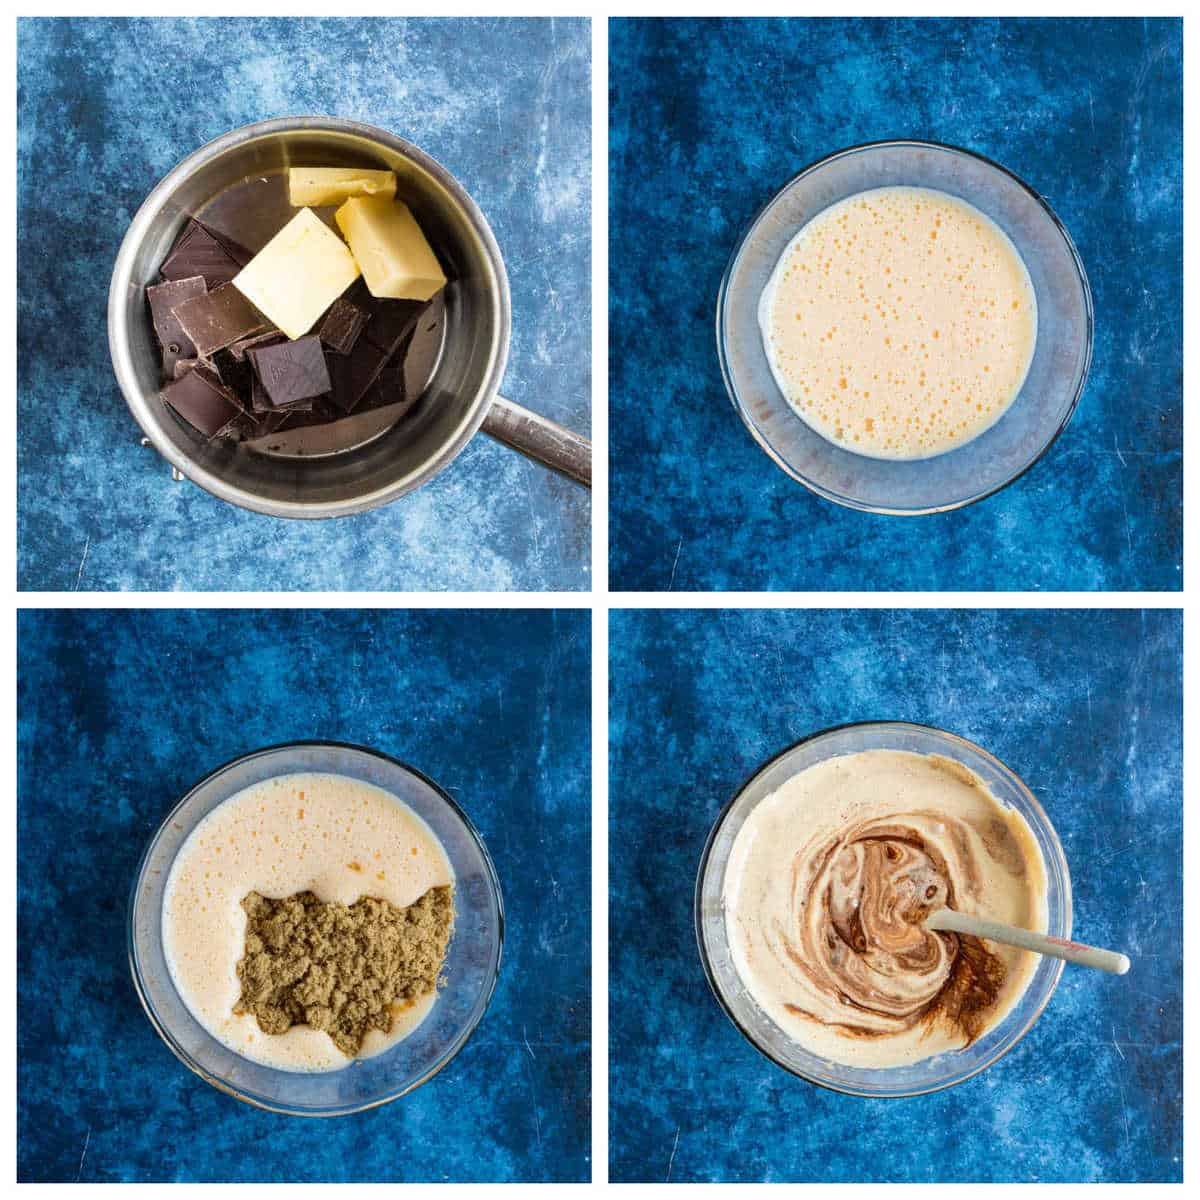 Step by step photo instructions for making mini egg brownies part 1.